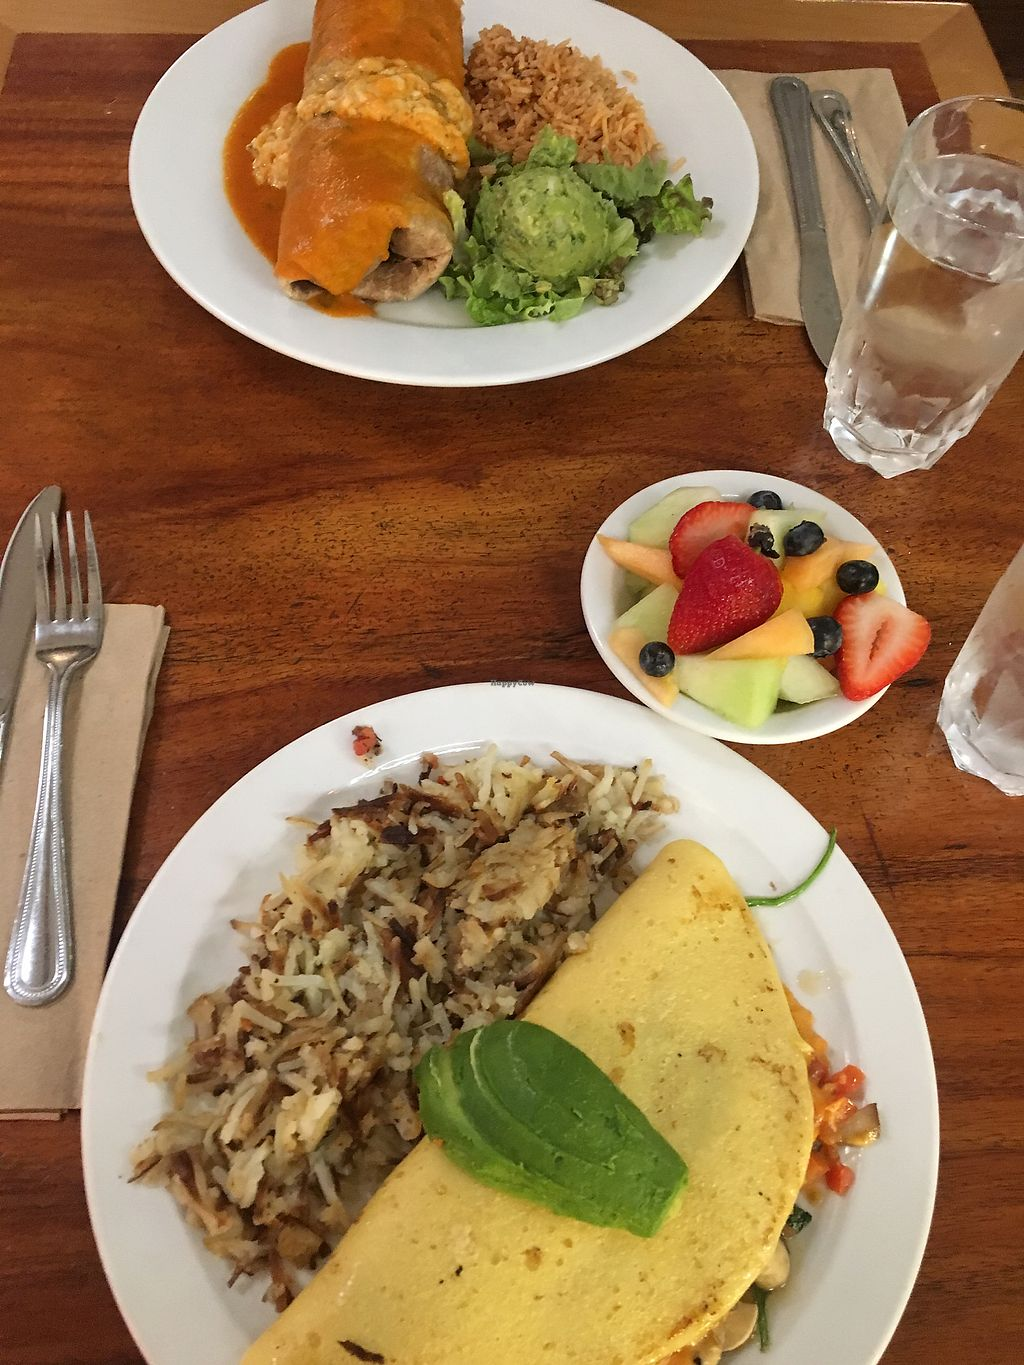 """Photo of Follow Your Heart Restaurant and Market  by <a href=""""/members/profile/vi%27sbunbun"""">vi'sbunbun</a> <br/>Vegan Omelet and burrito with FYH vegan egg <br/> May 8, 2018  - <a href='/contact/abuse/image/1609/397049'>Report</a>"""